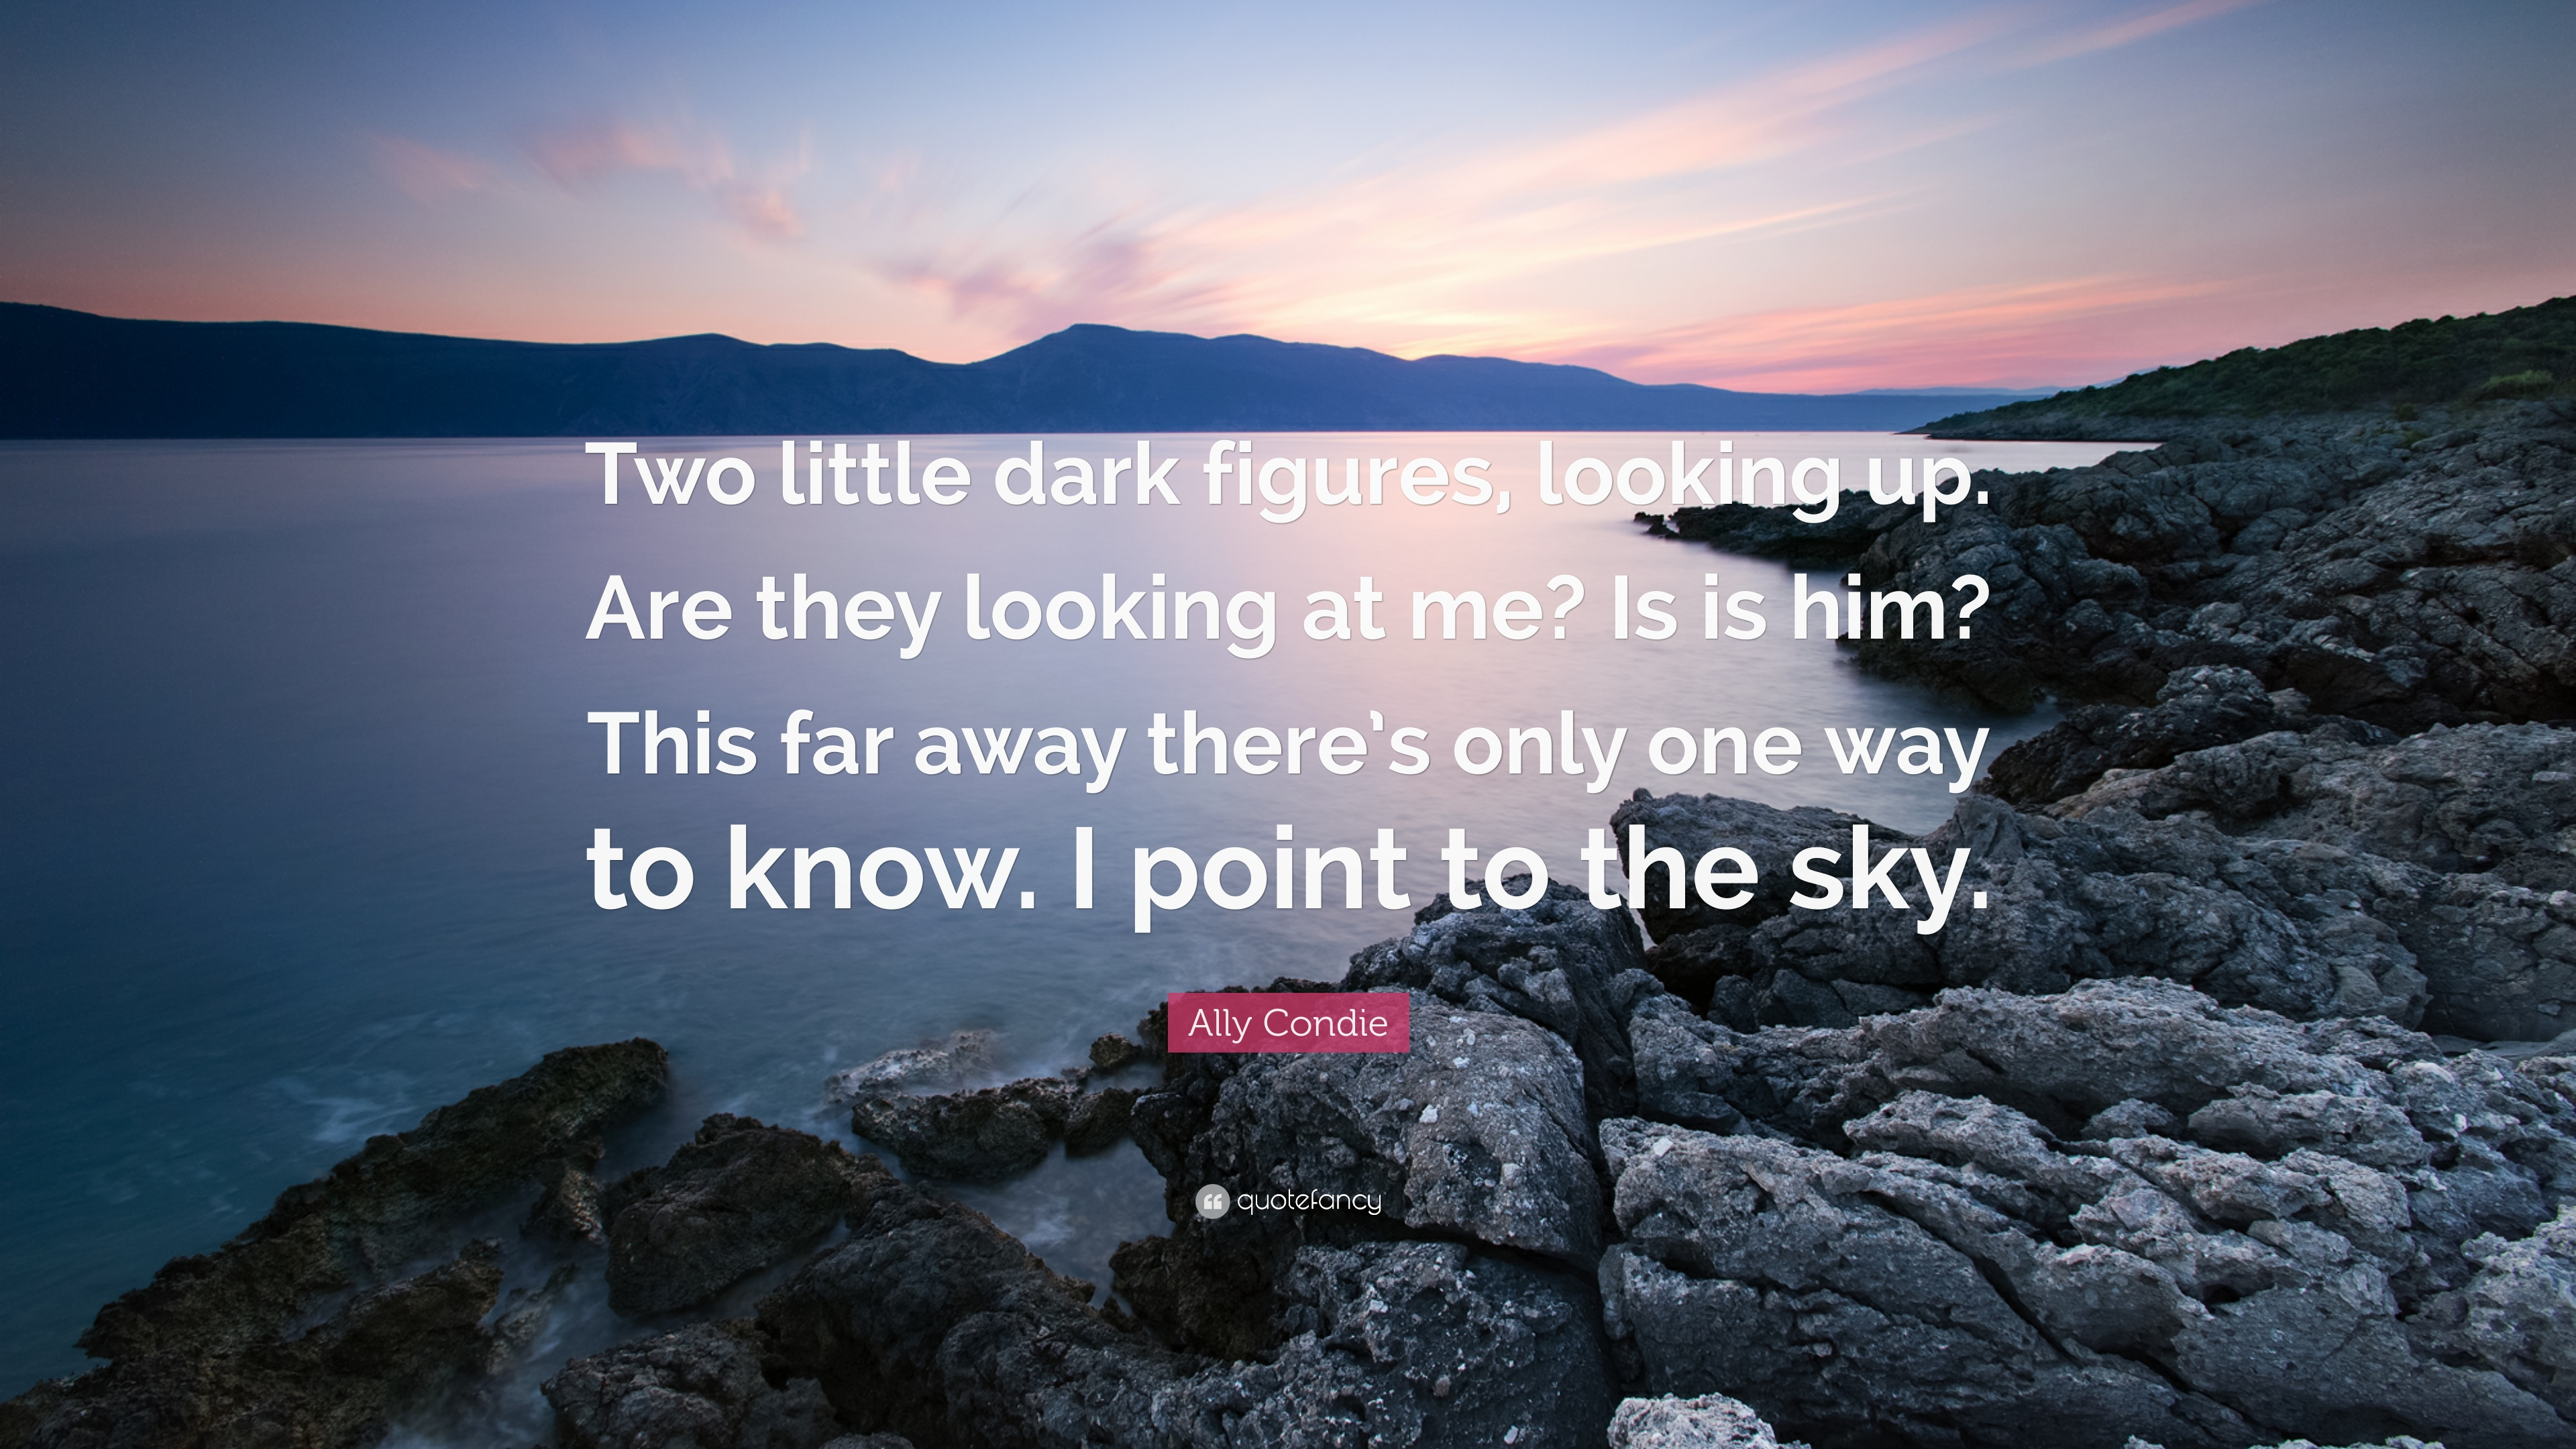 Ally Condie Quote Two Little Dark Figures Looking Up Are They